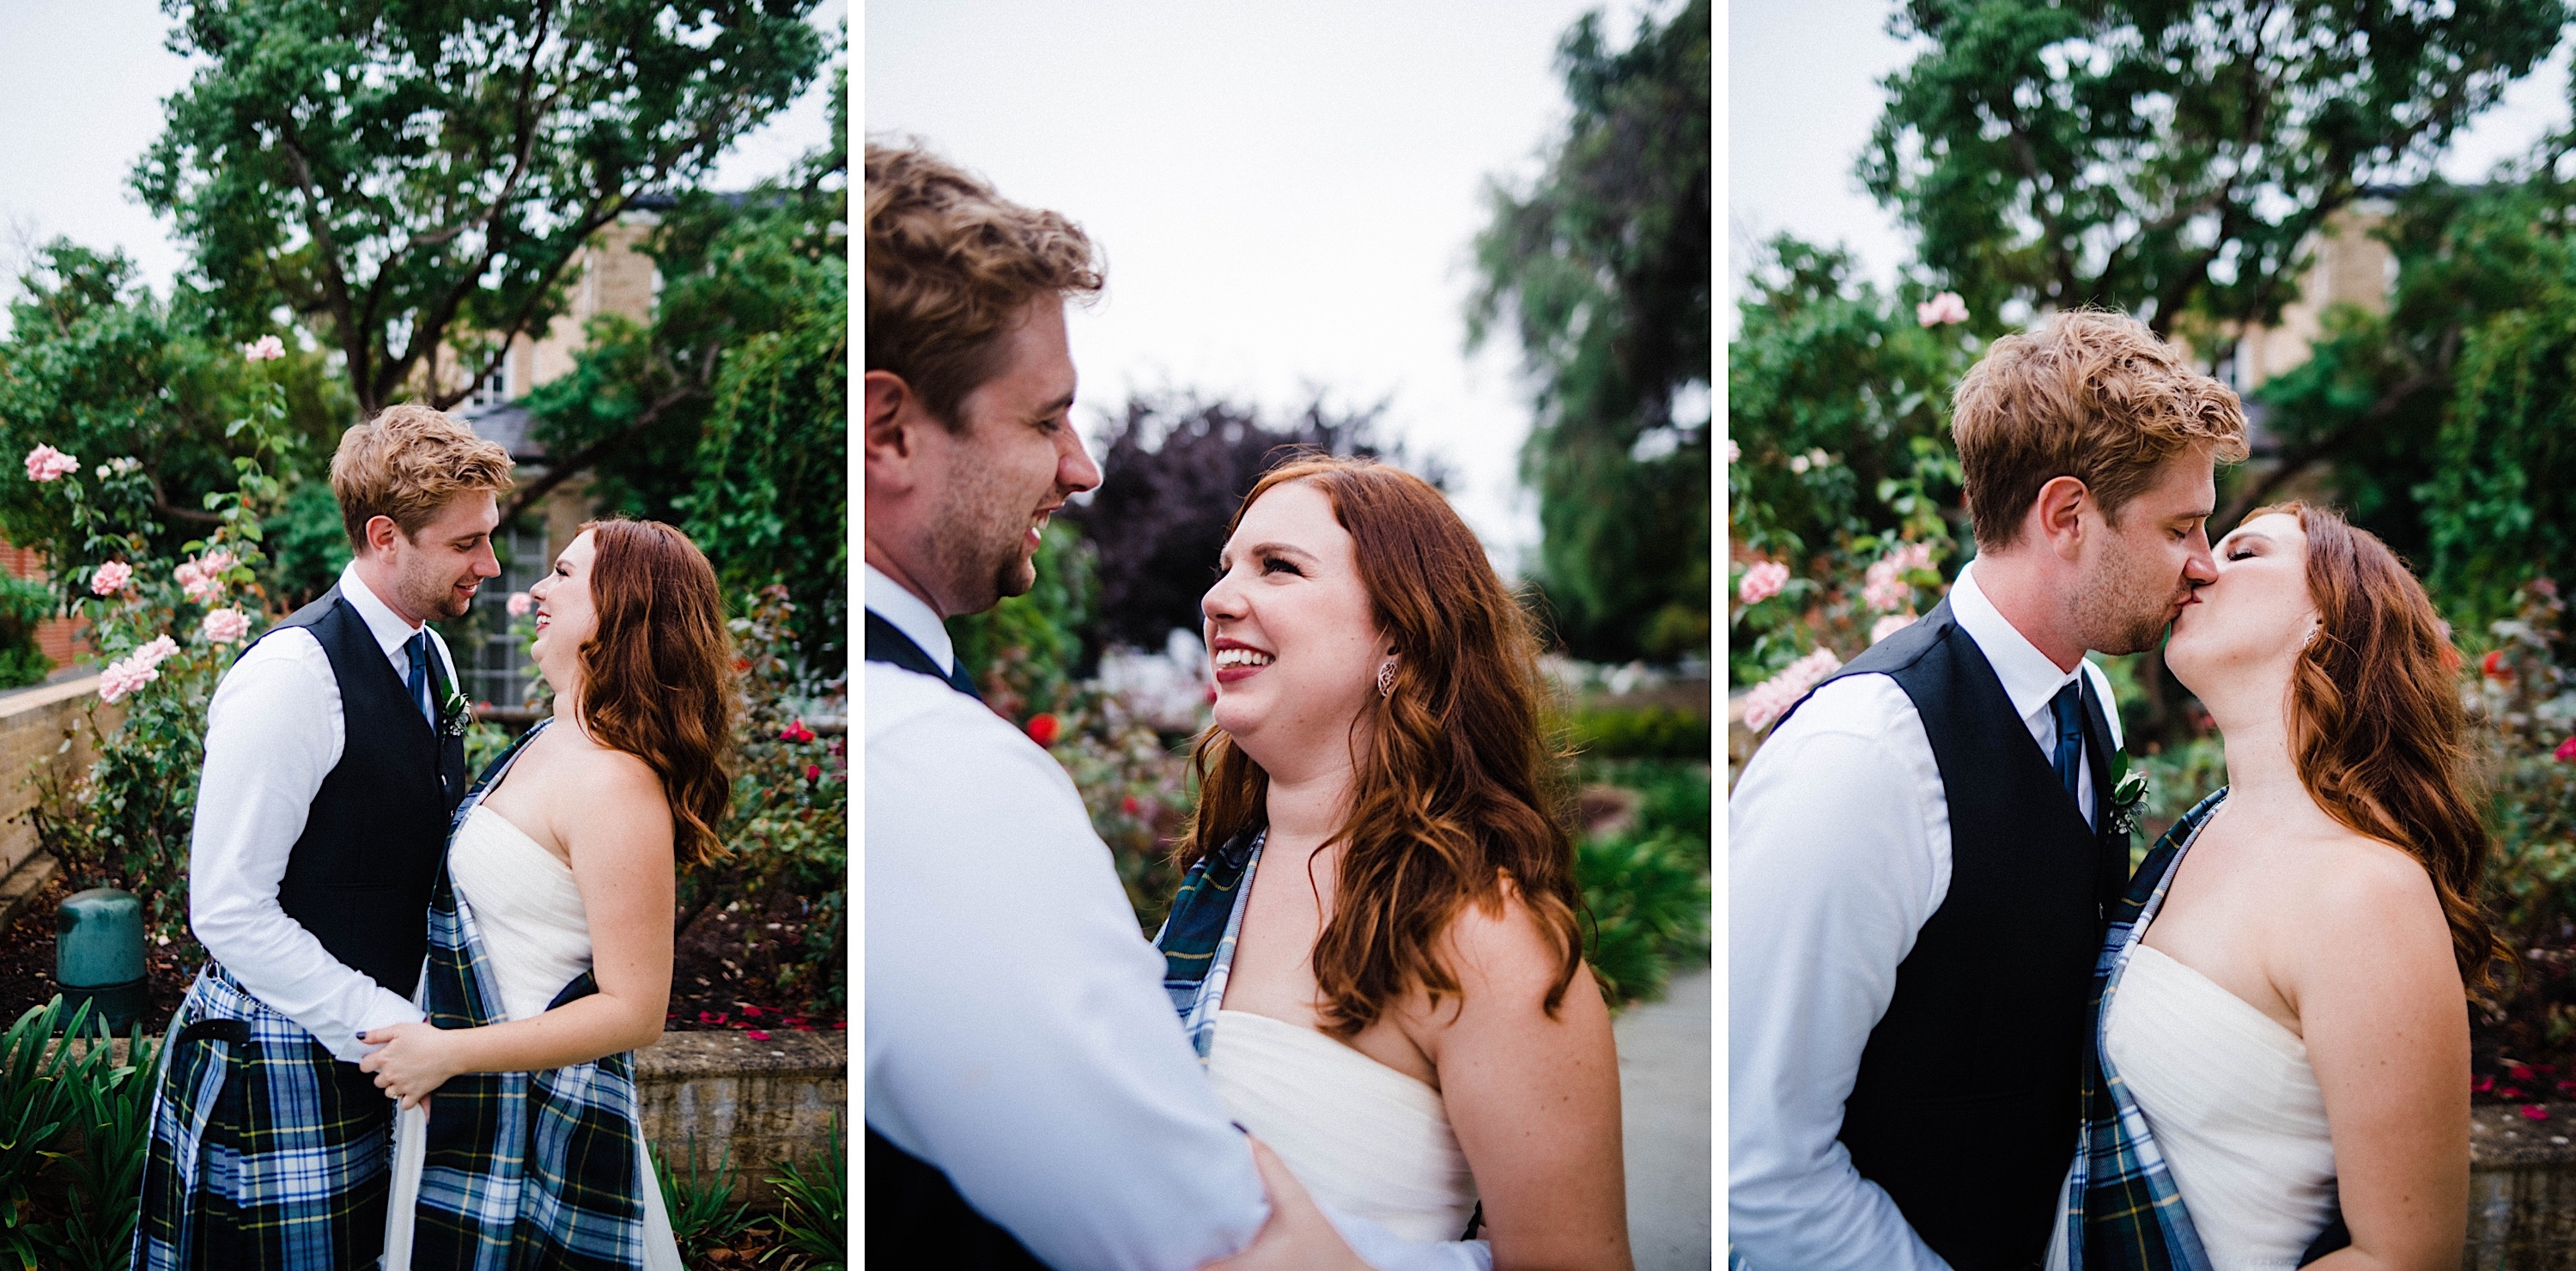 Three Documentary Wedding Portraits of the bride & groom sharing a moment outside of their Sustainable Backyard Wedding in Nedlands.